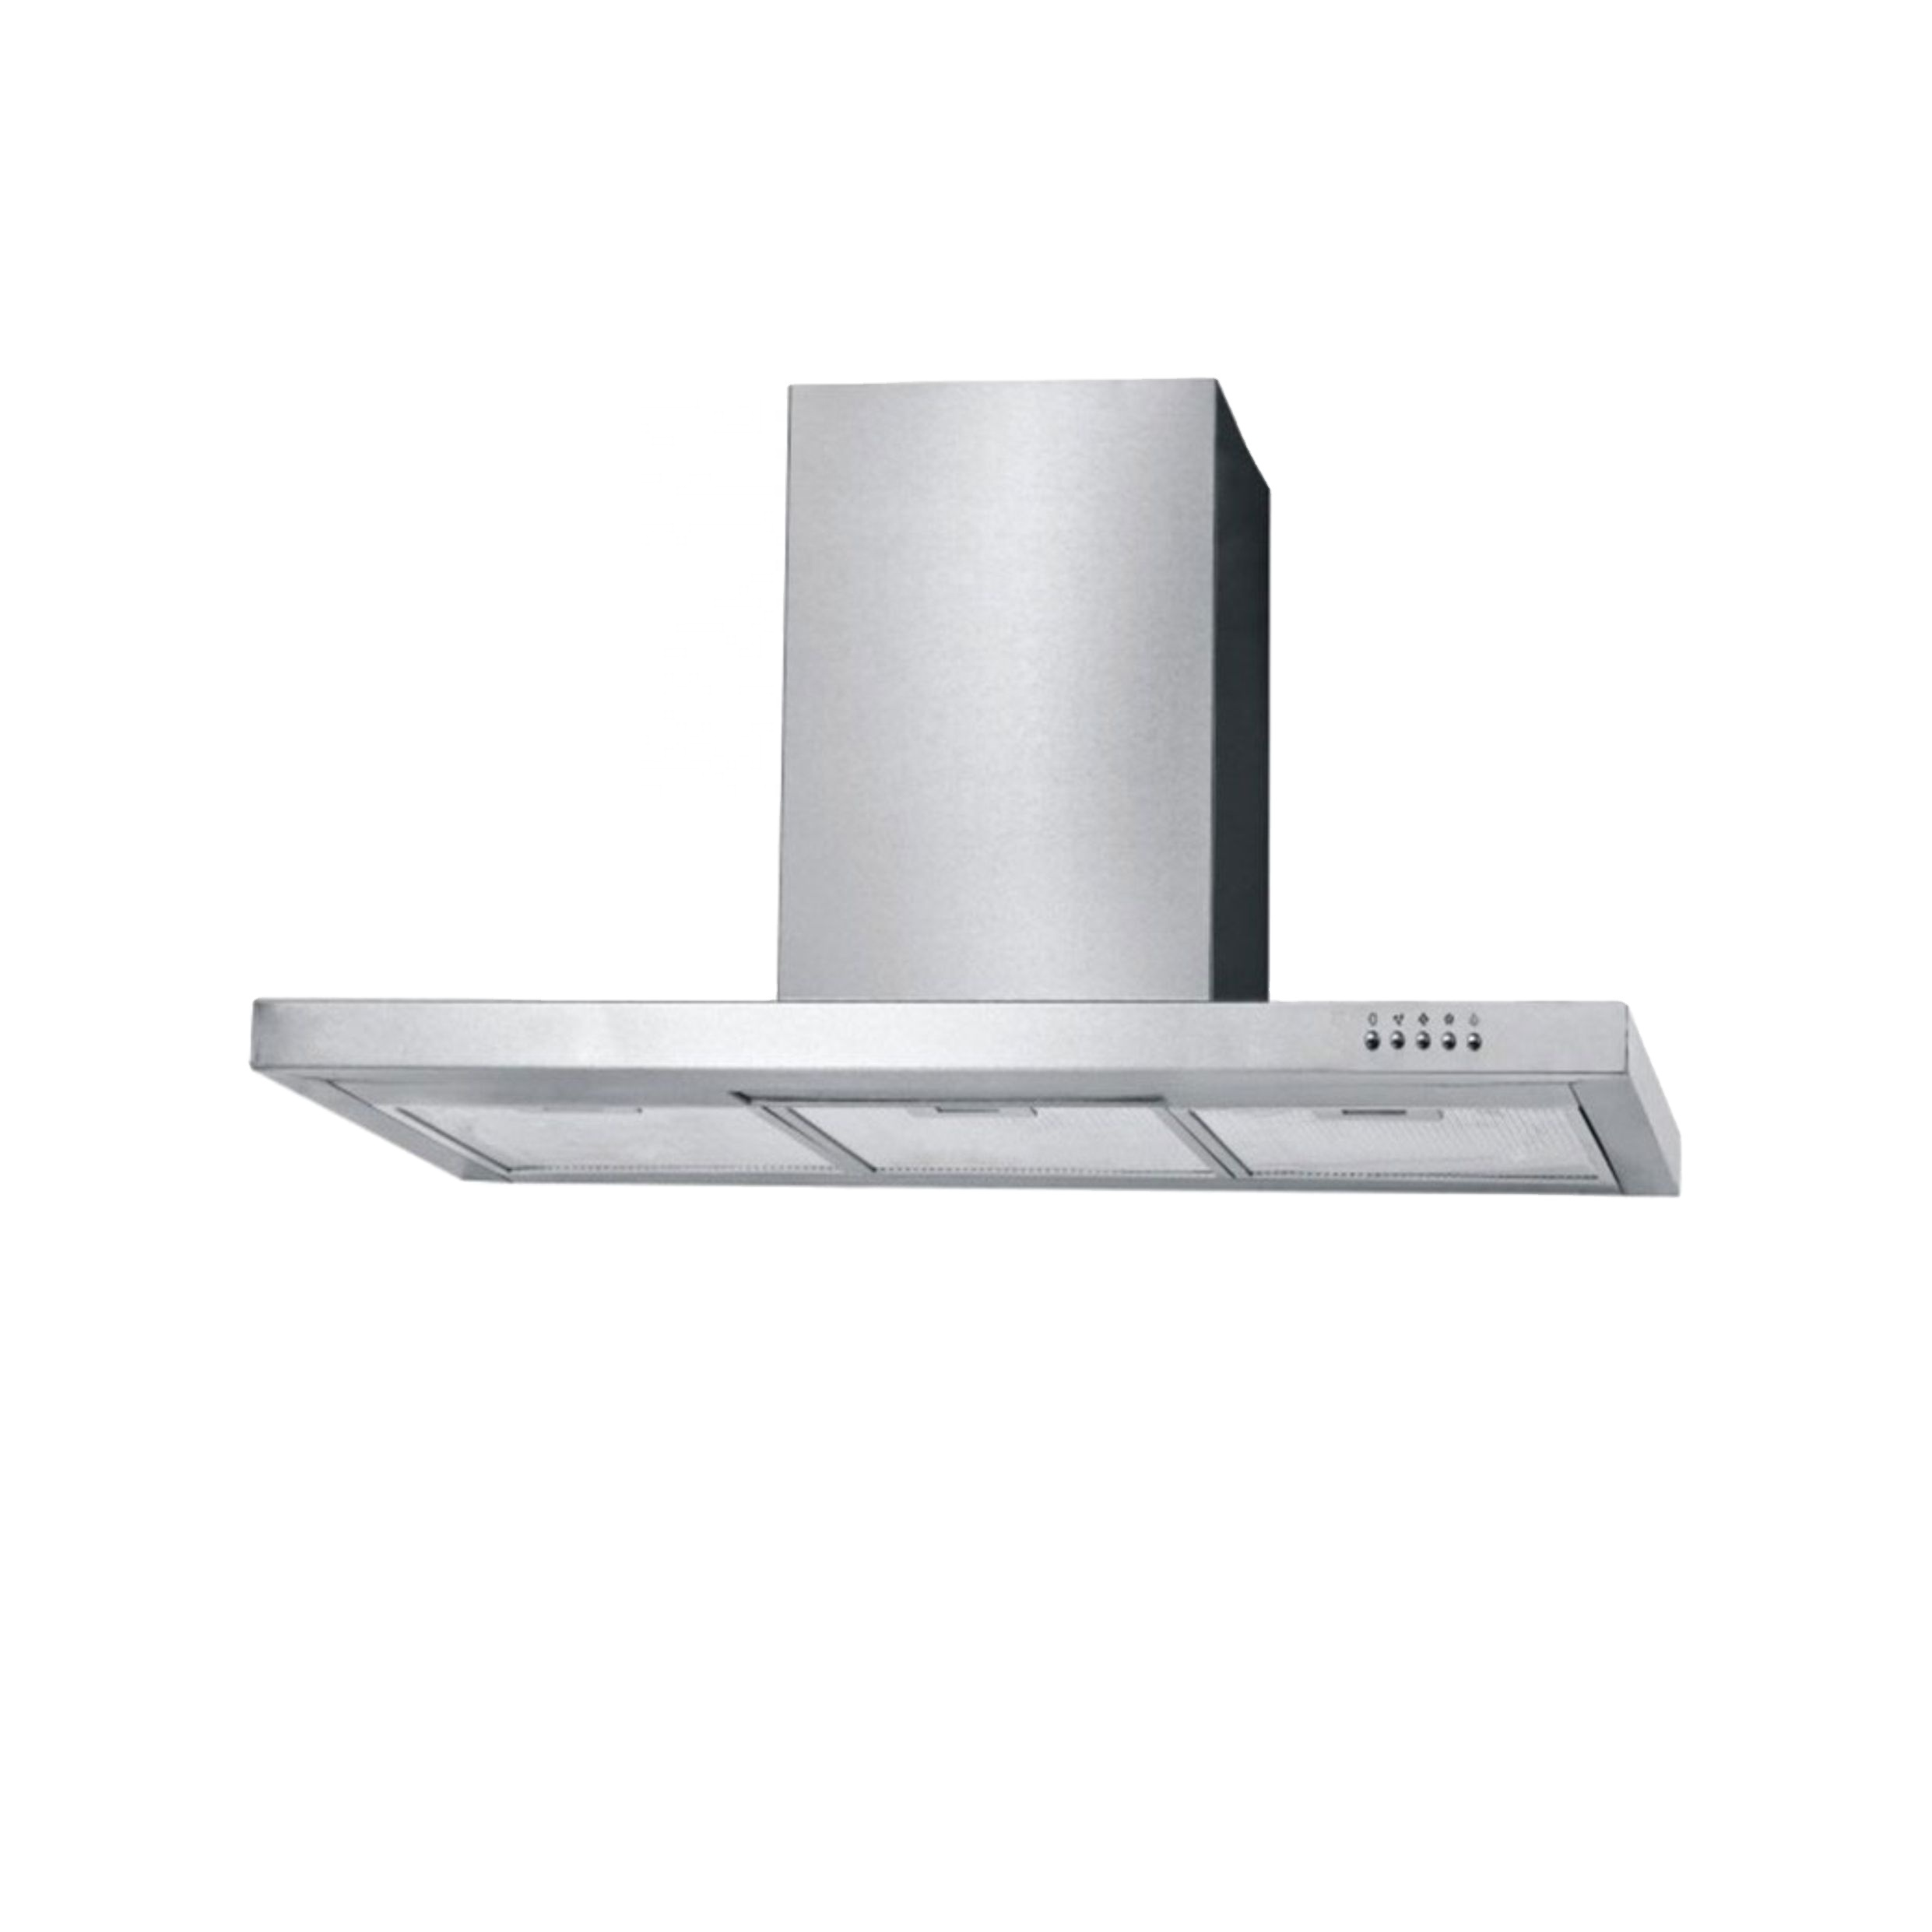 Kitchen Appliance T Shape Chimney Hood In Stainless Steel Vent Fan Cooker Hood With Filters View Kitchen Exhaust Chimney Hood With Filter Oem Odm Product Details From Foshan Fvgor Electric Industry